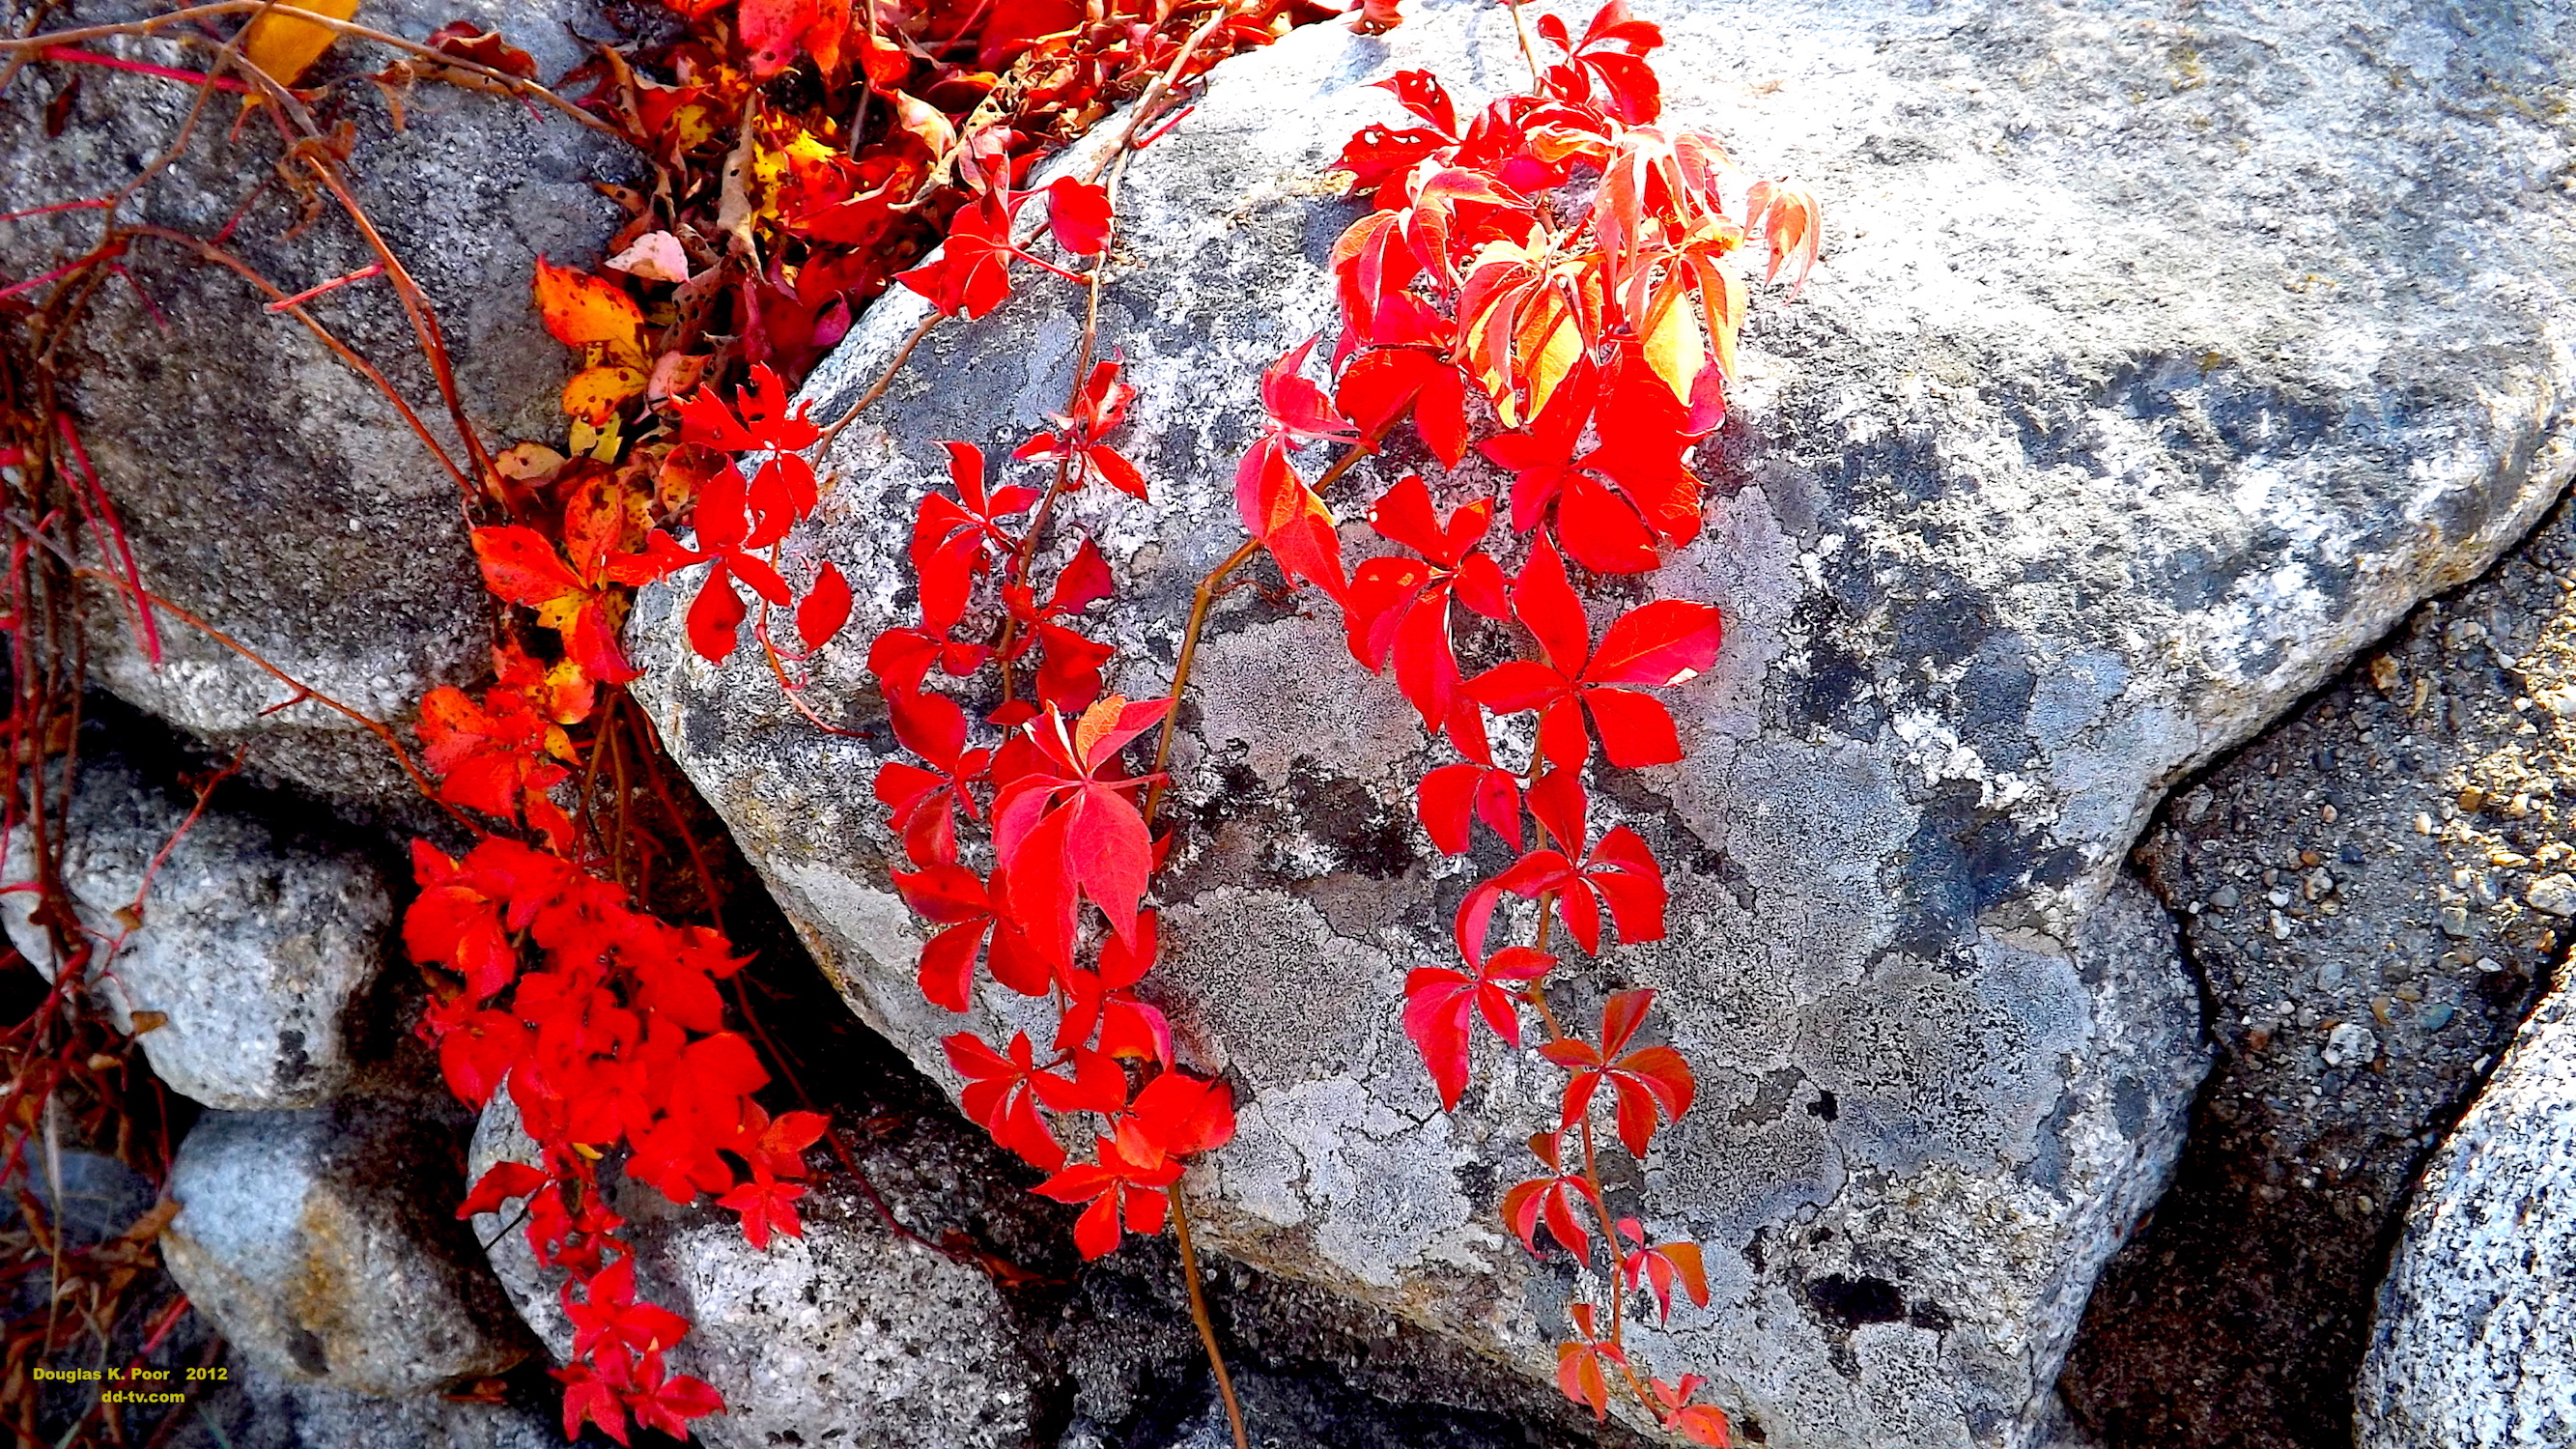 =================RED-FOLIAGE-ON-ROCK-smaller-size============================================================================================================================RED-FOLIAGE-ON-ROCK-smaller-size